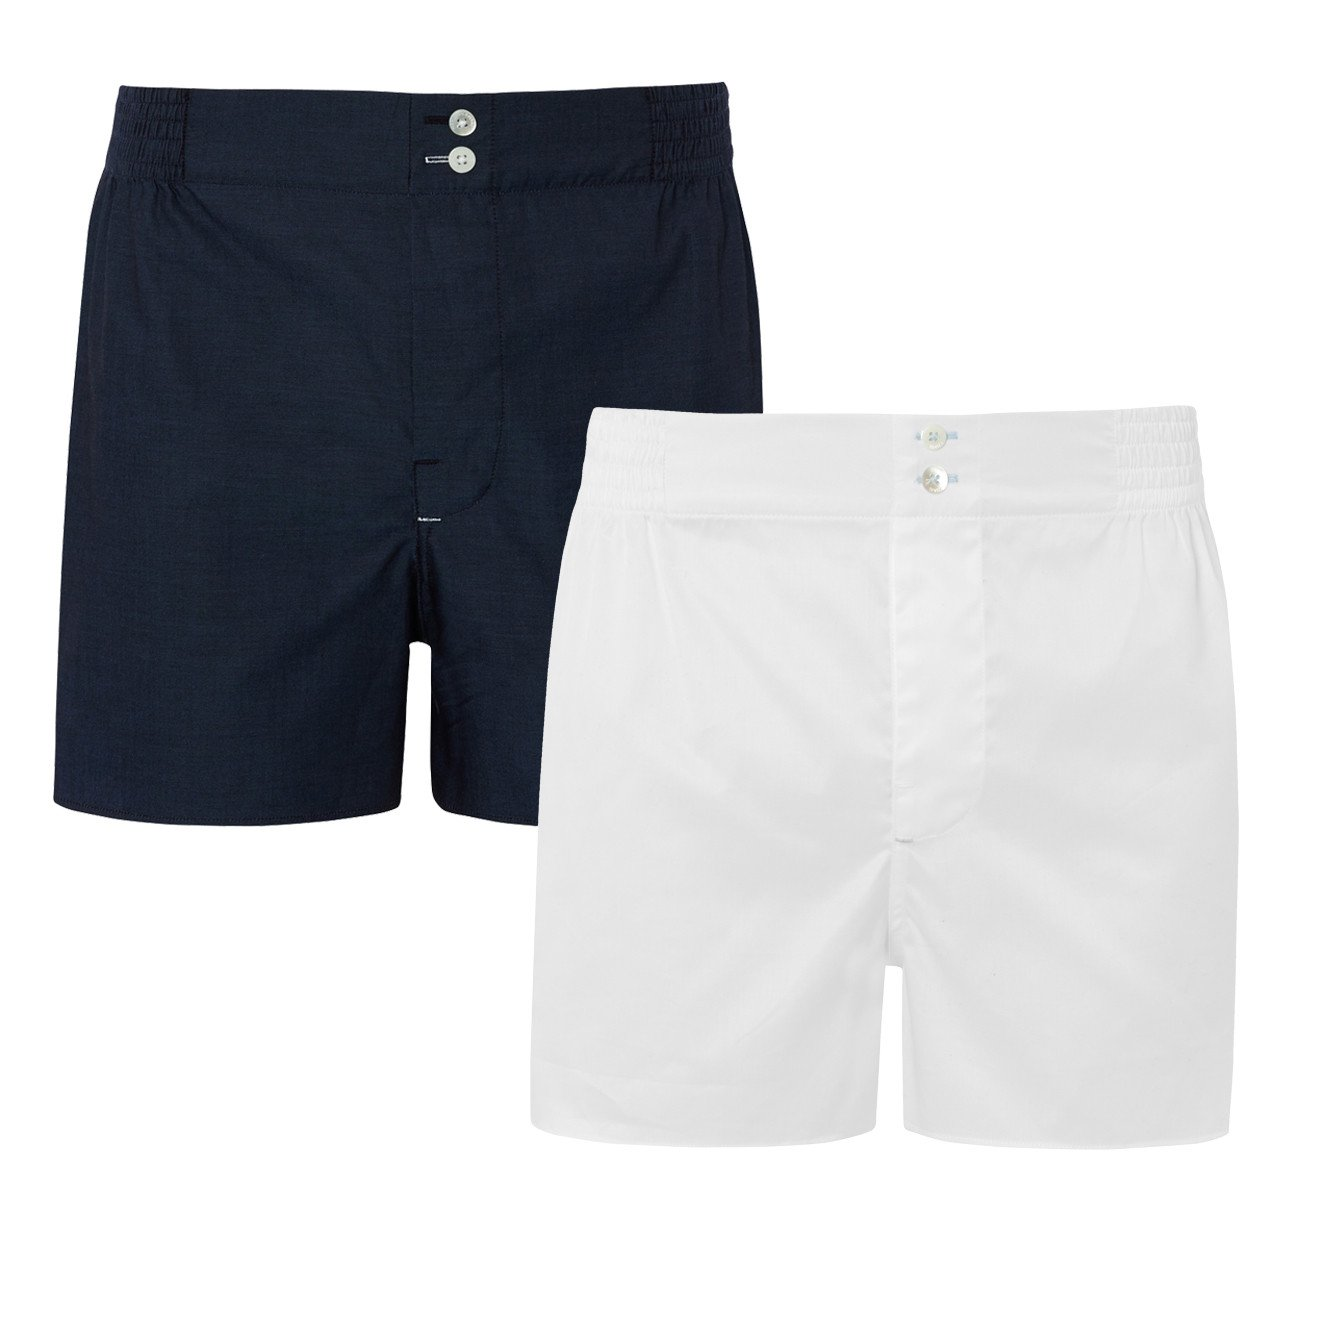 Hamilton & Hare The Boxer Short Two Pack